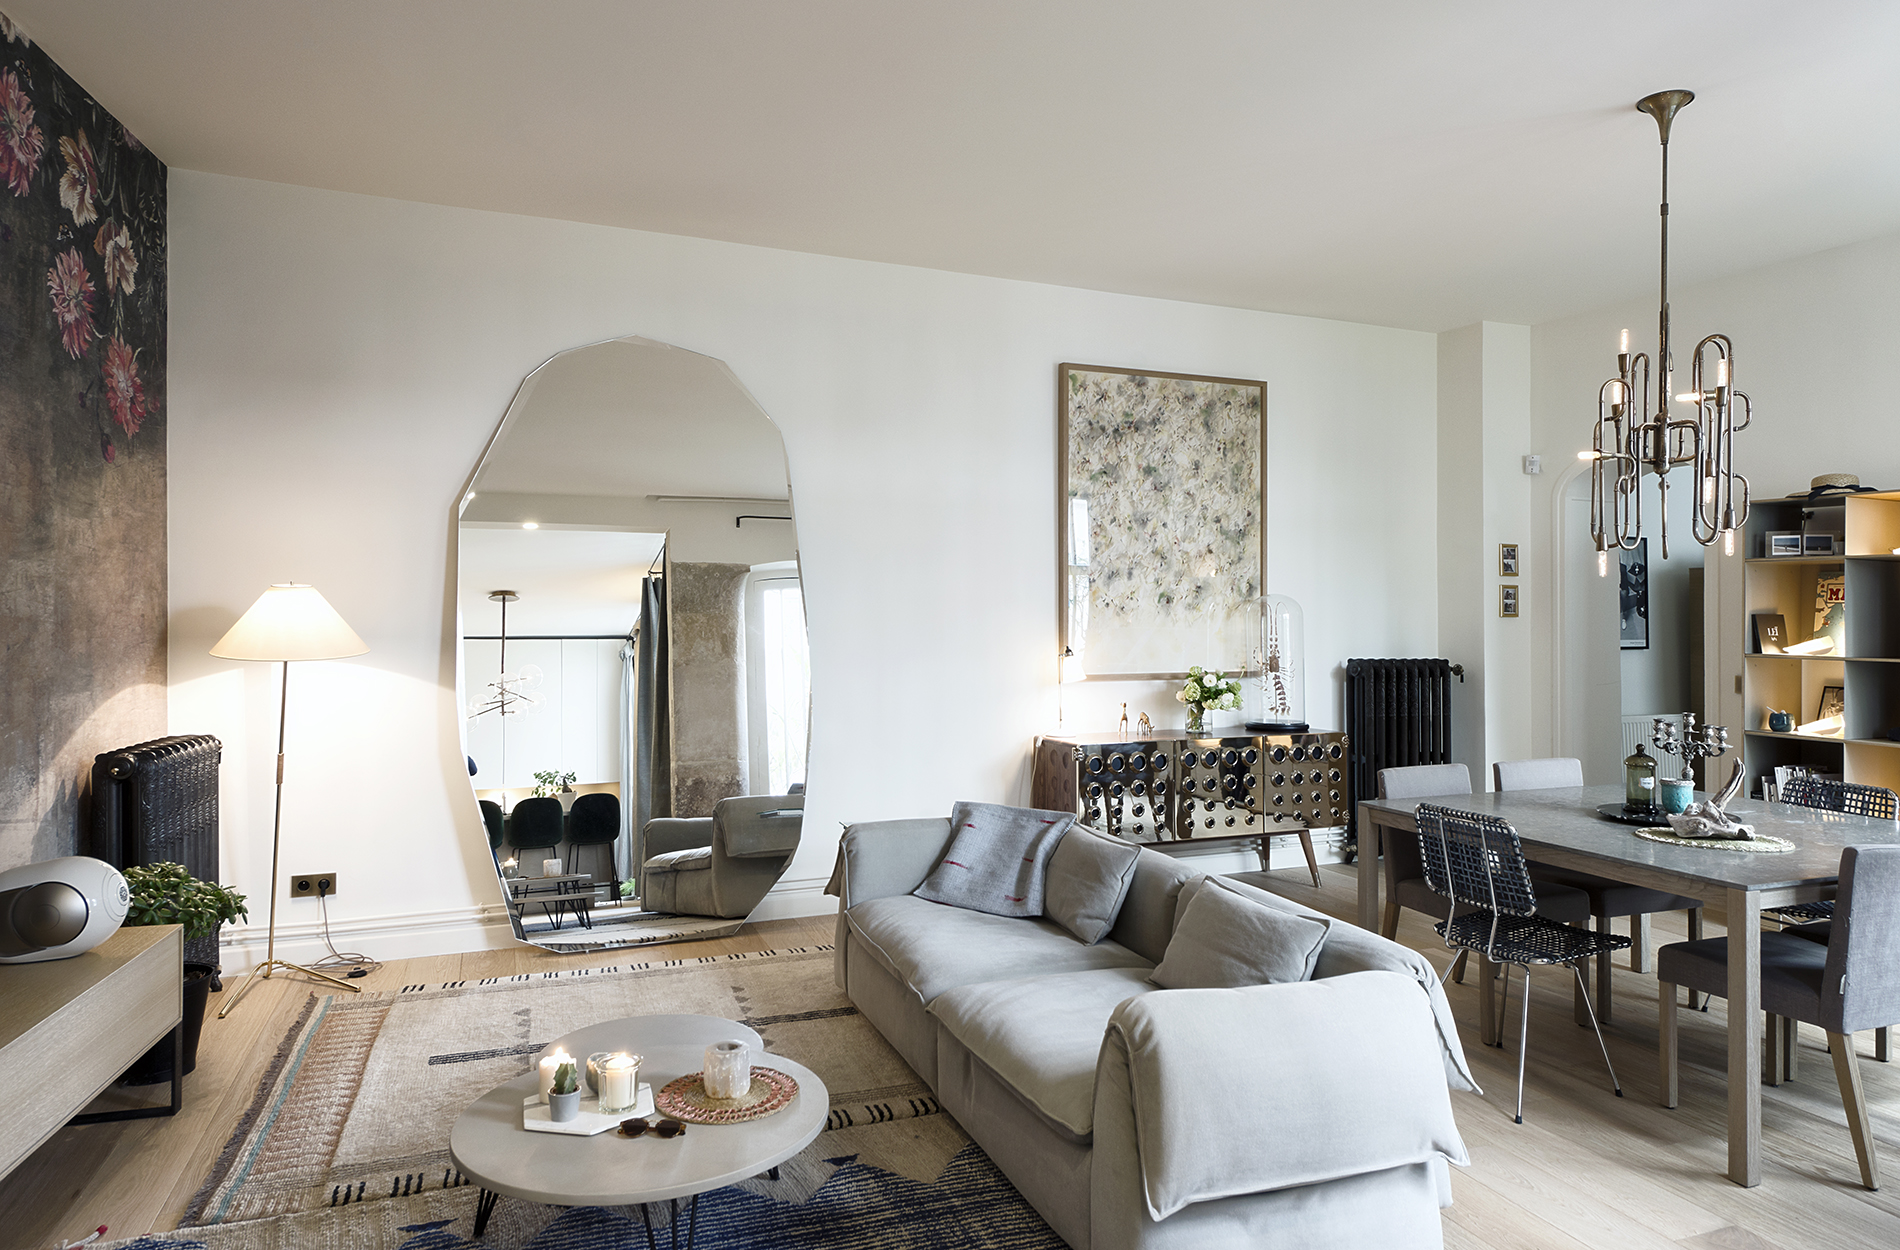 Mid-Century Lighting Brings Life to Apartment in Romantic Paris mid-century lighting Mid-Century Lighting Brings Life to Apartment in Romantic Paris Mid Century Lighting Brings Life to Apartment in Romantic Paris 1